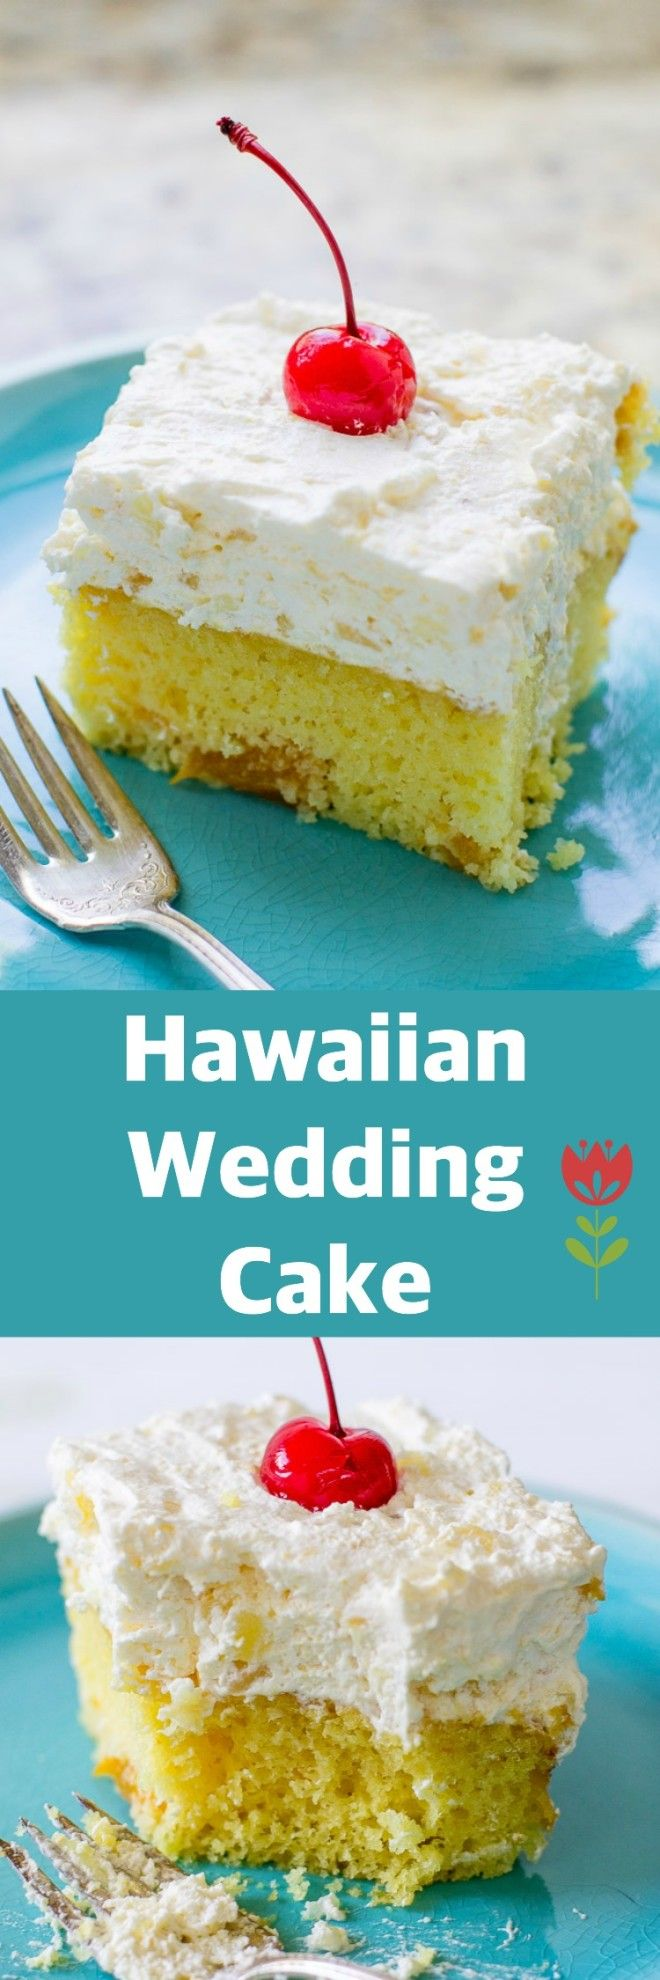 With oranges in the batter and pineapple in the frosting, Hawaiian Wedding Cake is deliciously tropical on your plate and easier to make…